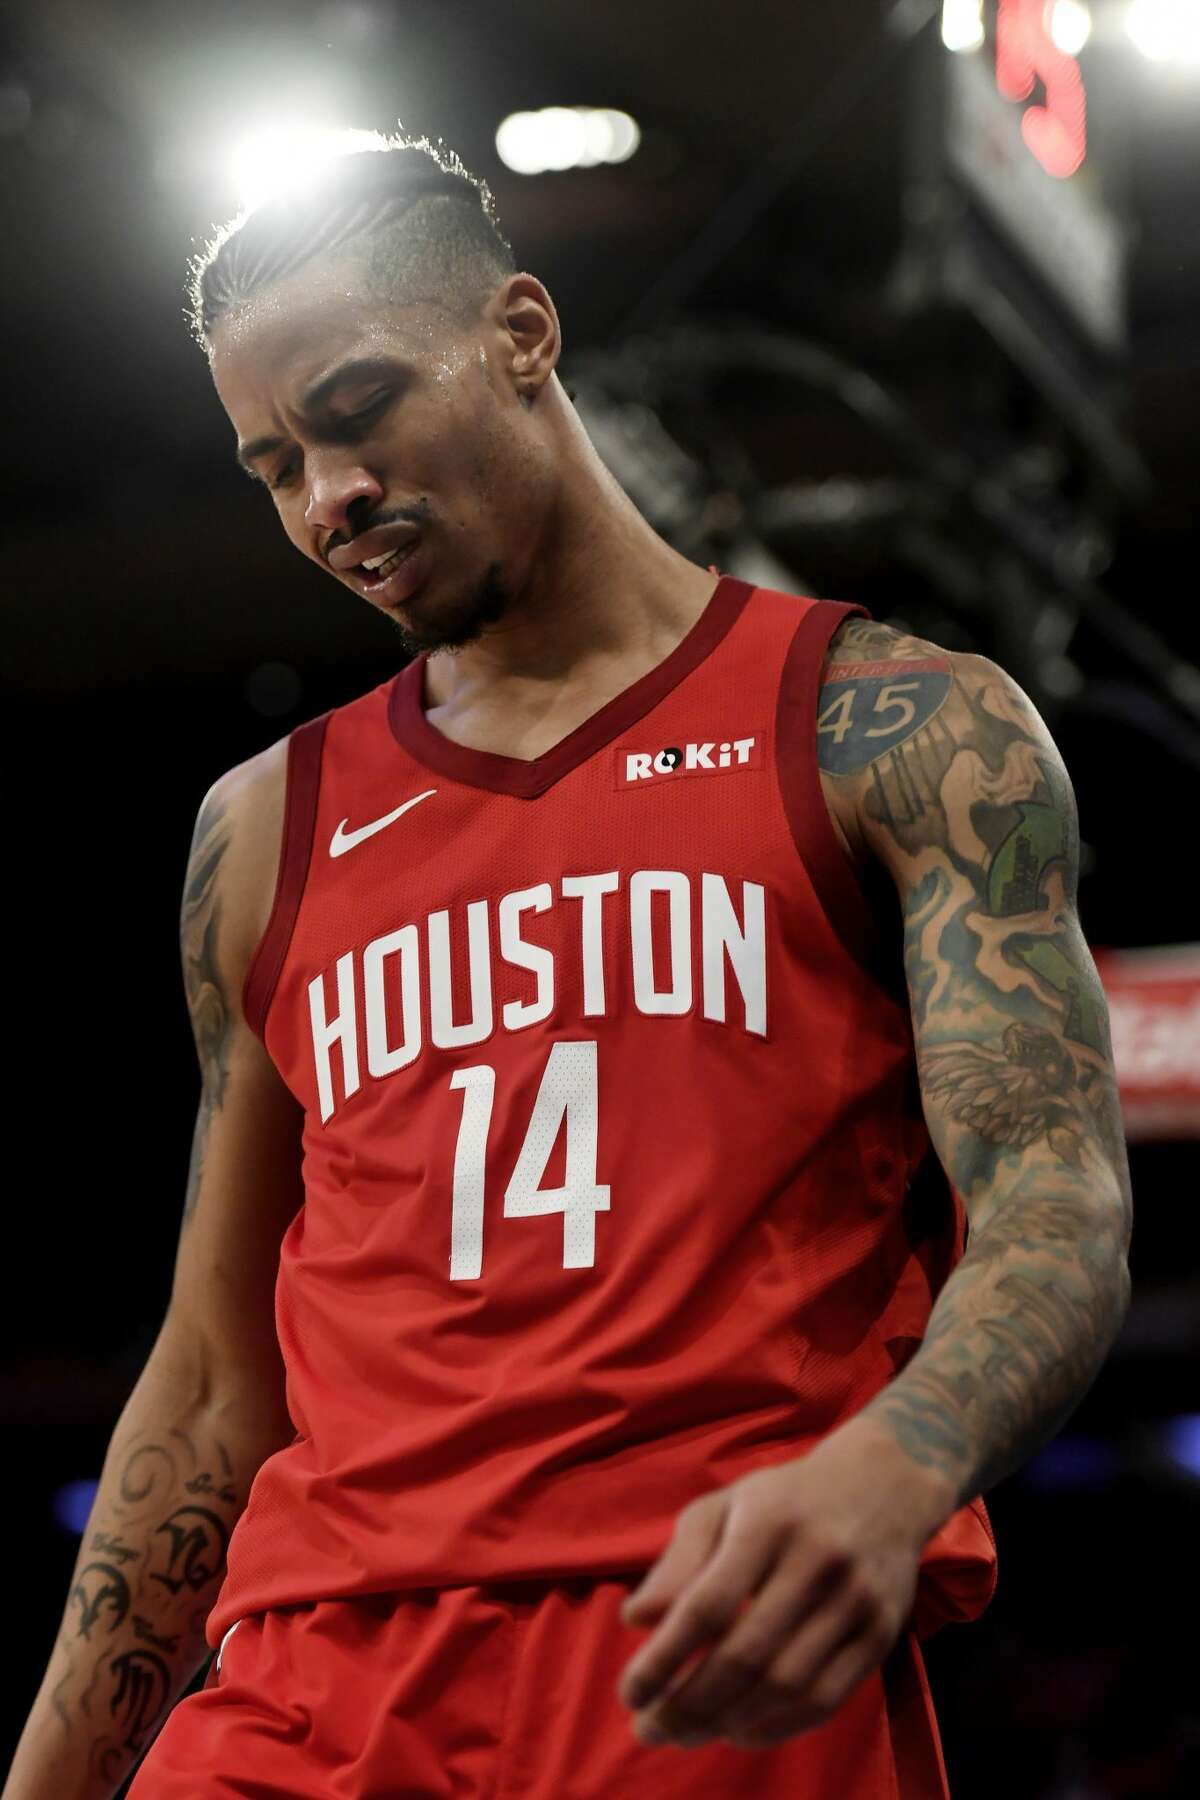 NEW YORK, NEW YORK - JANUARY 23: Gerald Green #14 of the Houston Rockets reacts to a call during the fourth quarter of the game against theNew York Knicks at Madison Square Garden on January 23, 2019 in New York City. NOTE TO USER: User expressly acknowledges and agrees that, by downloading and or using this photograph, User is consenting to the terms and conditions of the Getty Images License Agreement. (Photo by Sarah Stier/Getty Images)